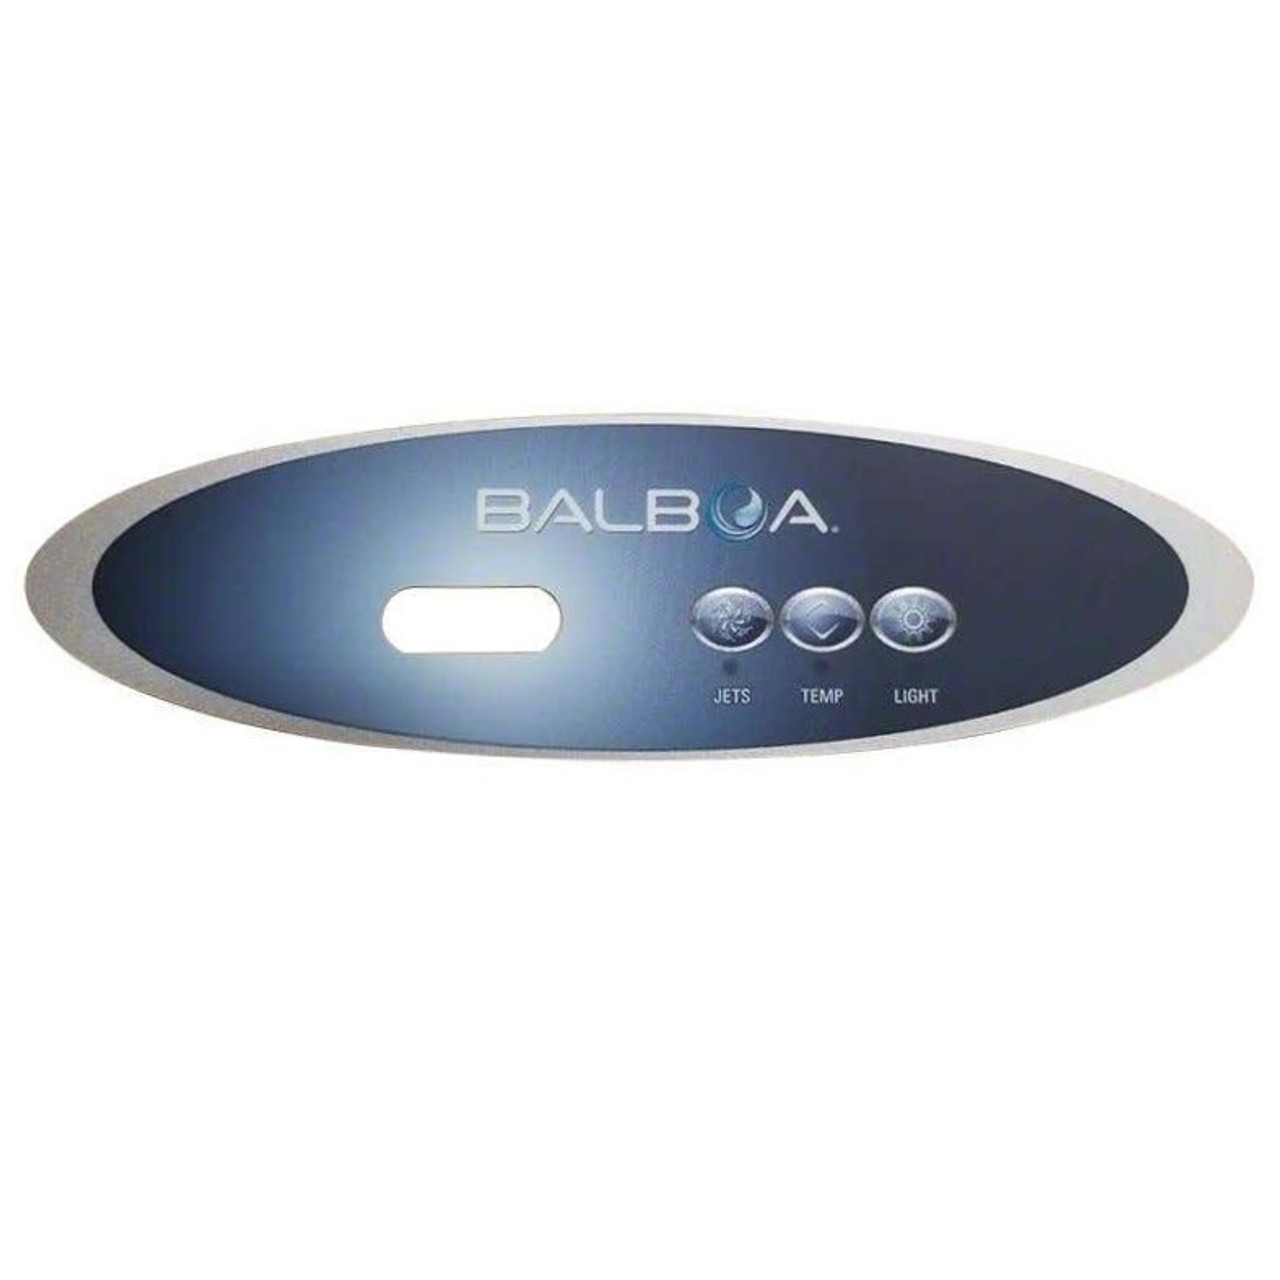 Master Spa - X509142 - Overlay, Balboa 3 Button - F/MVP  - Front View